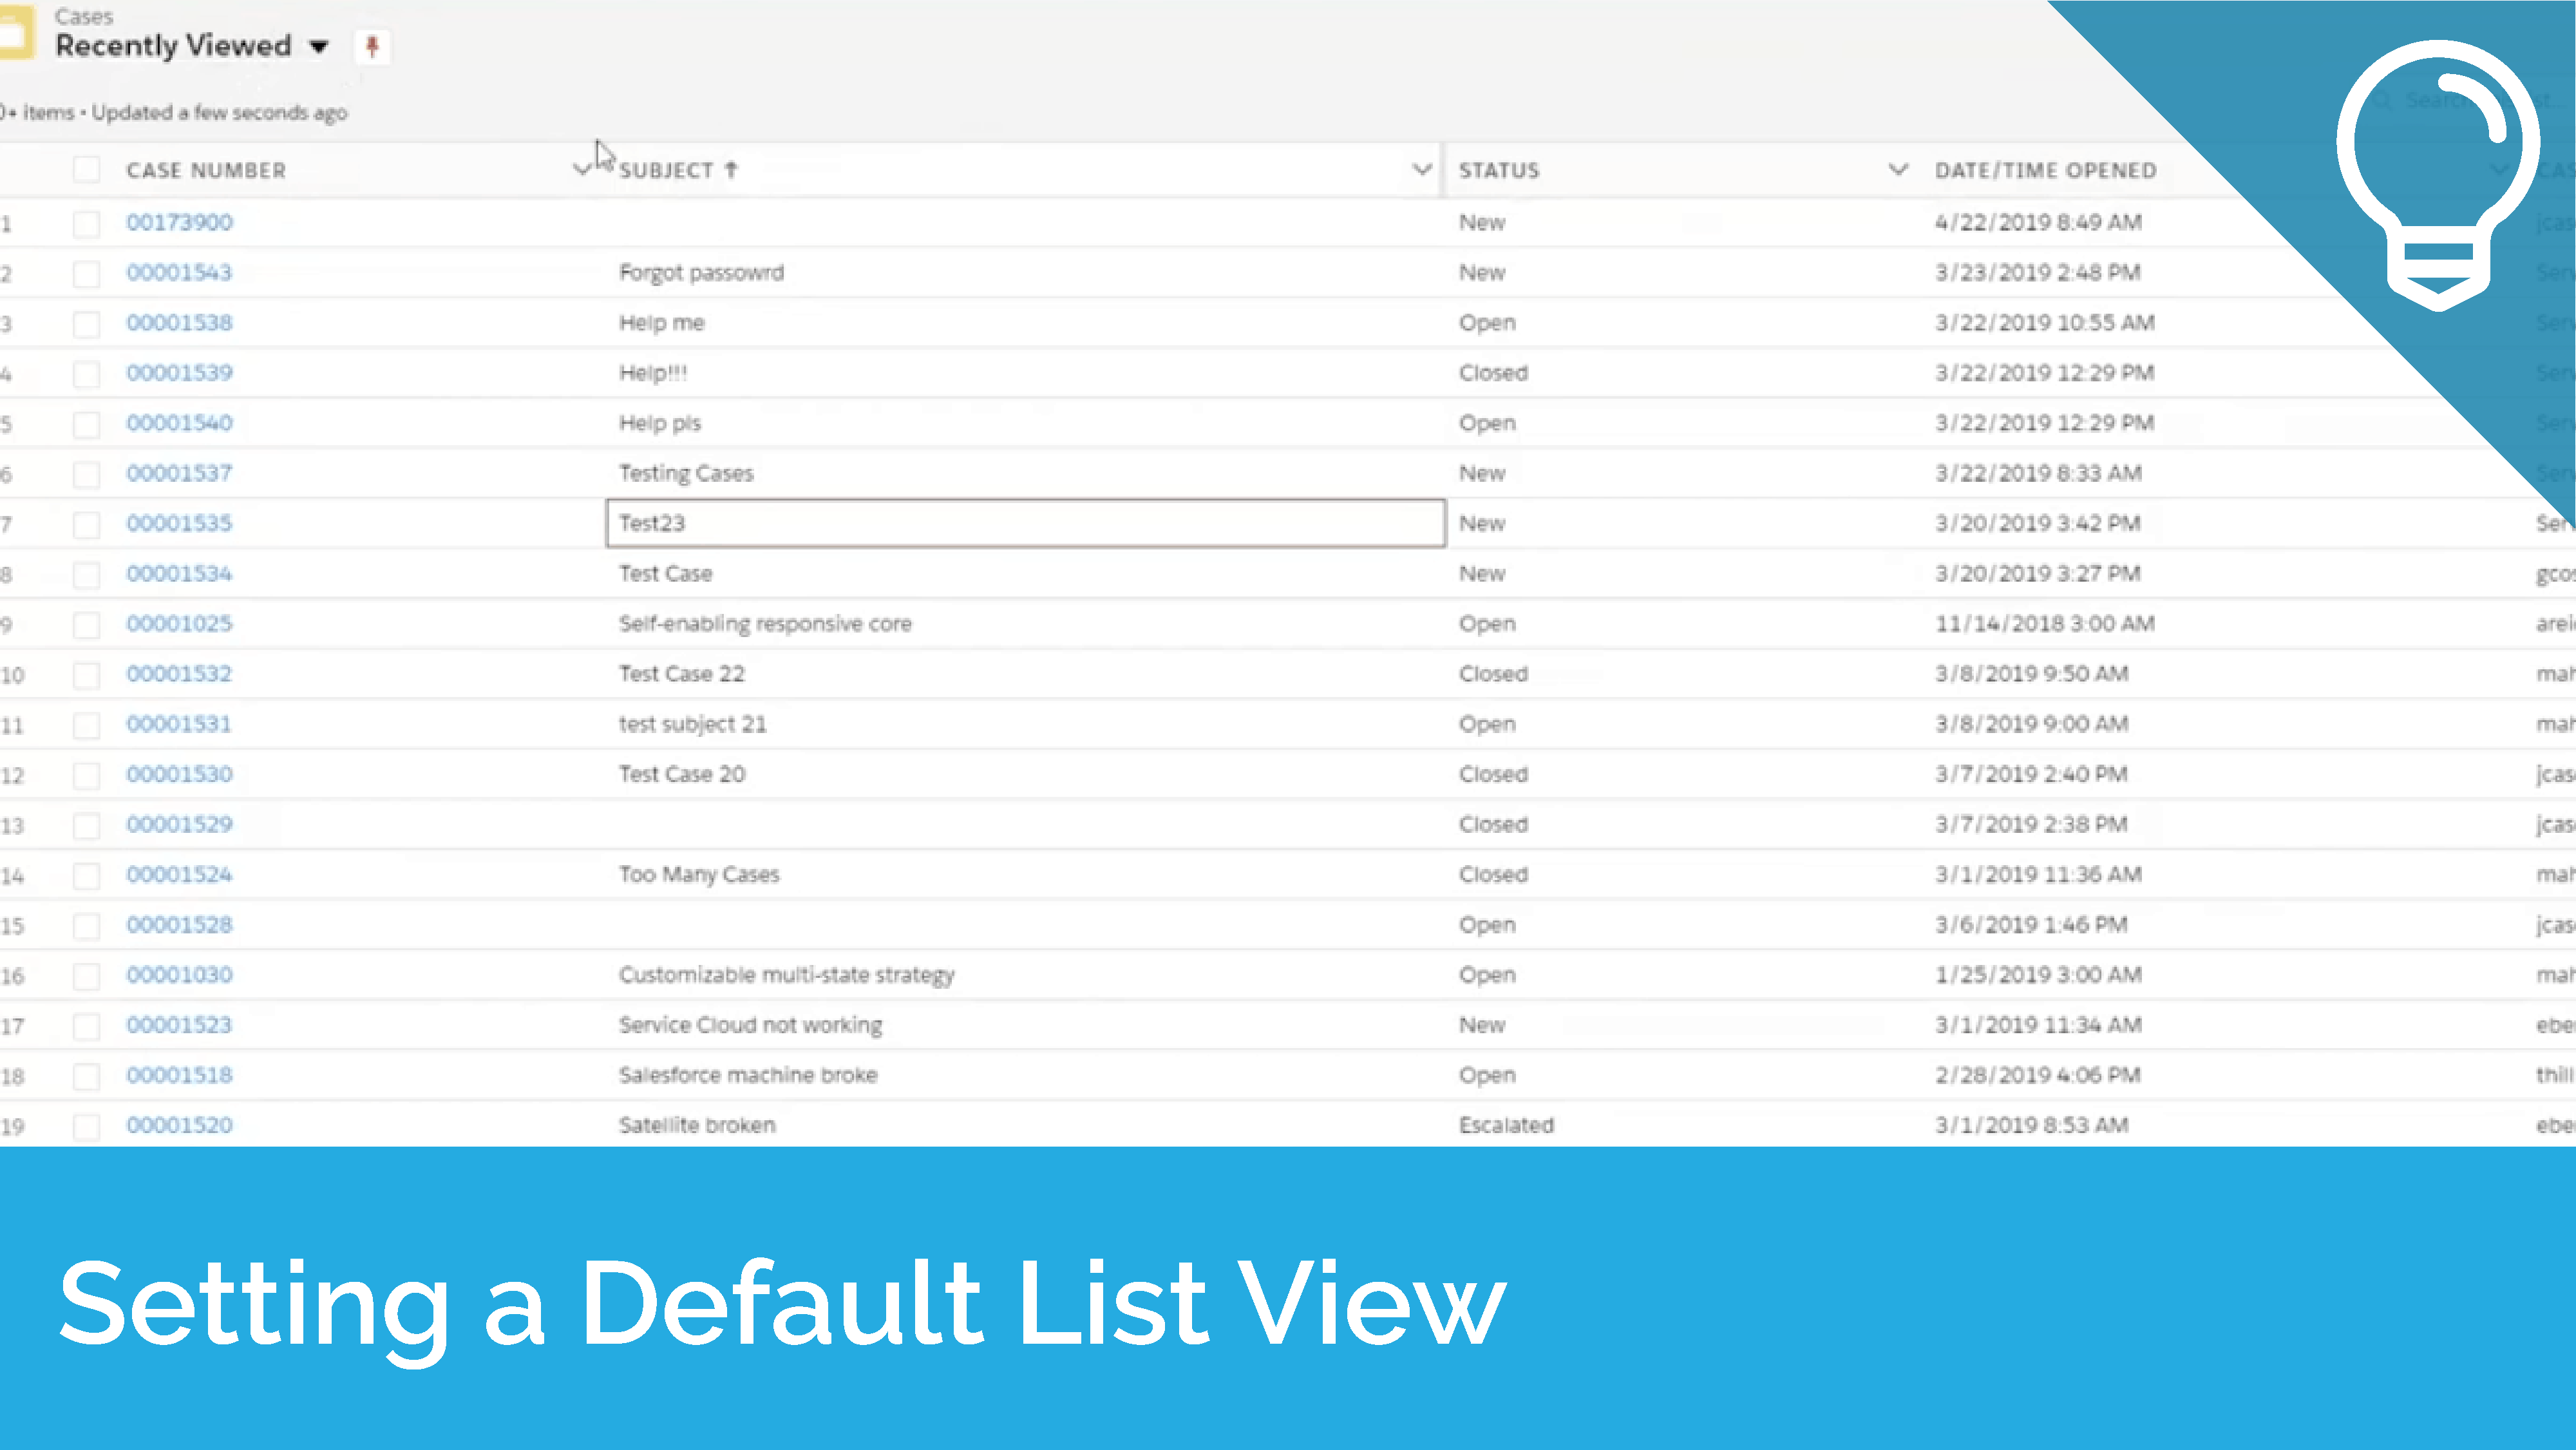 Setting a Default List View